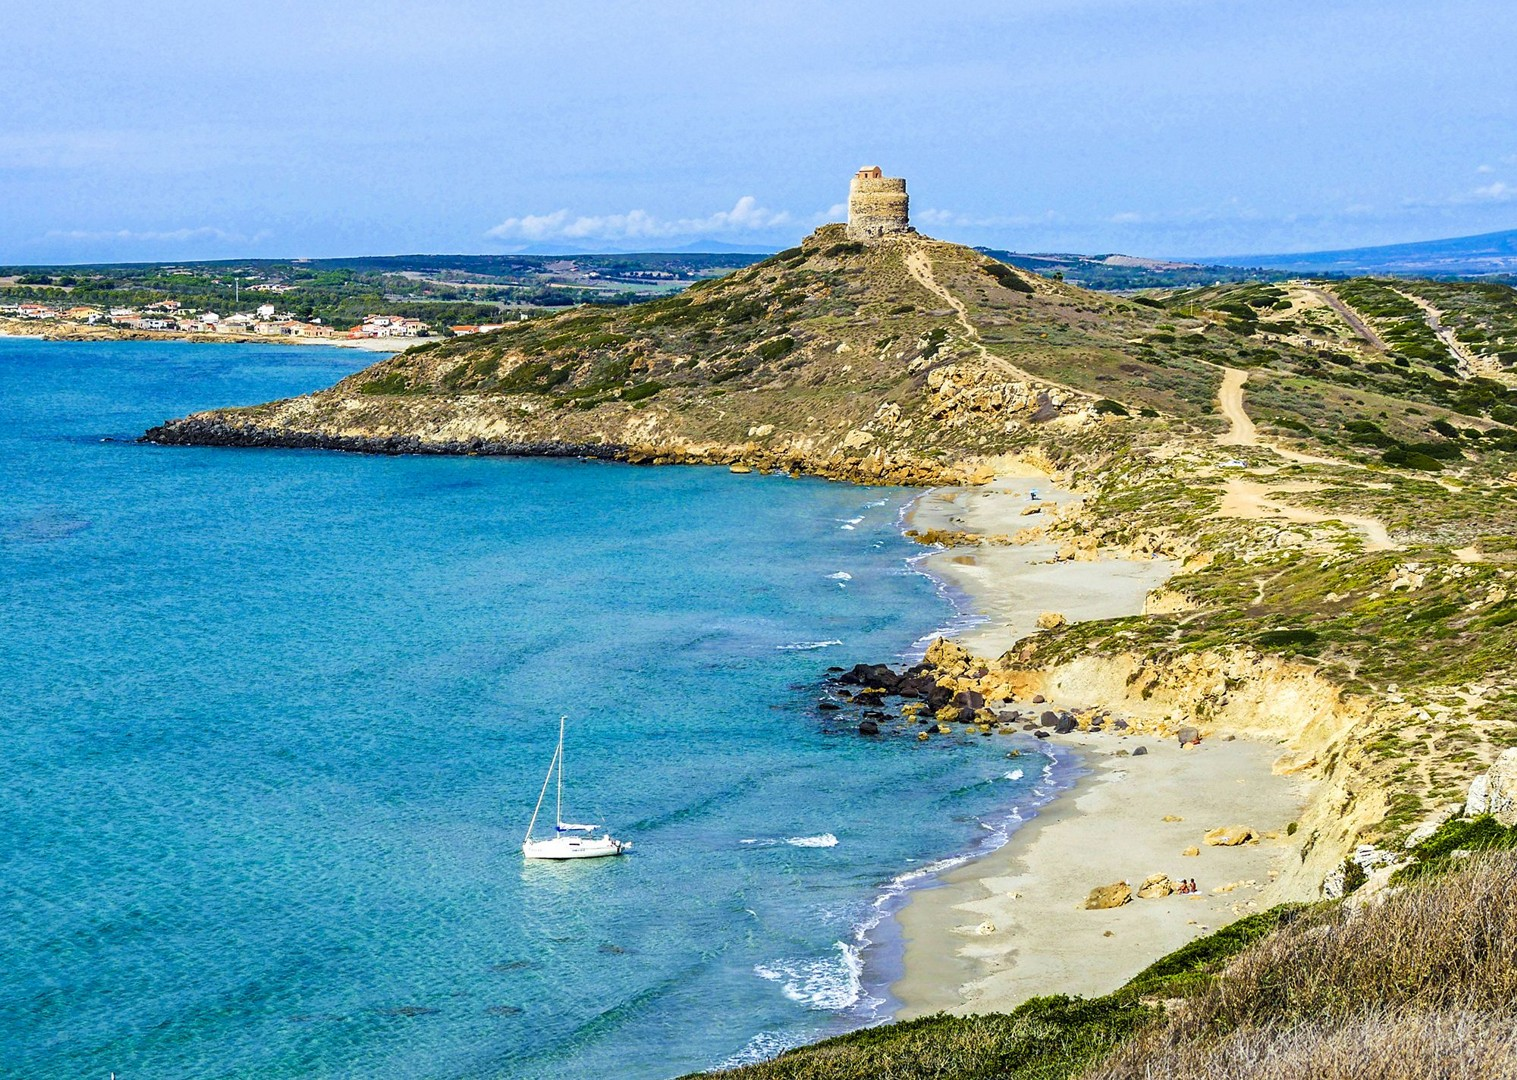 Spiaggia di Capo San Marco-2.jpg - Italy - Sardinia - Island Flavours - Self-Guided Leisure Cycling Holiday - Italia Leisure and Family Cycling